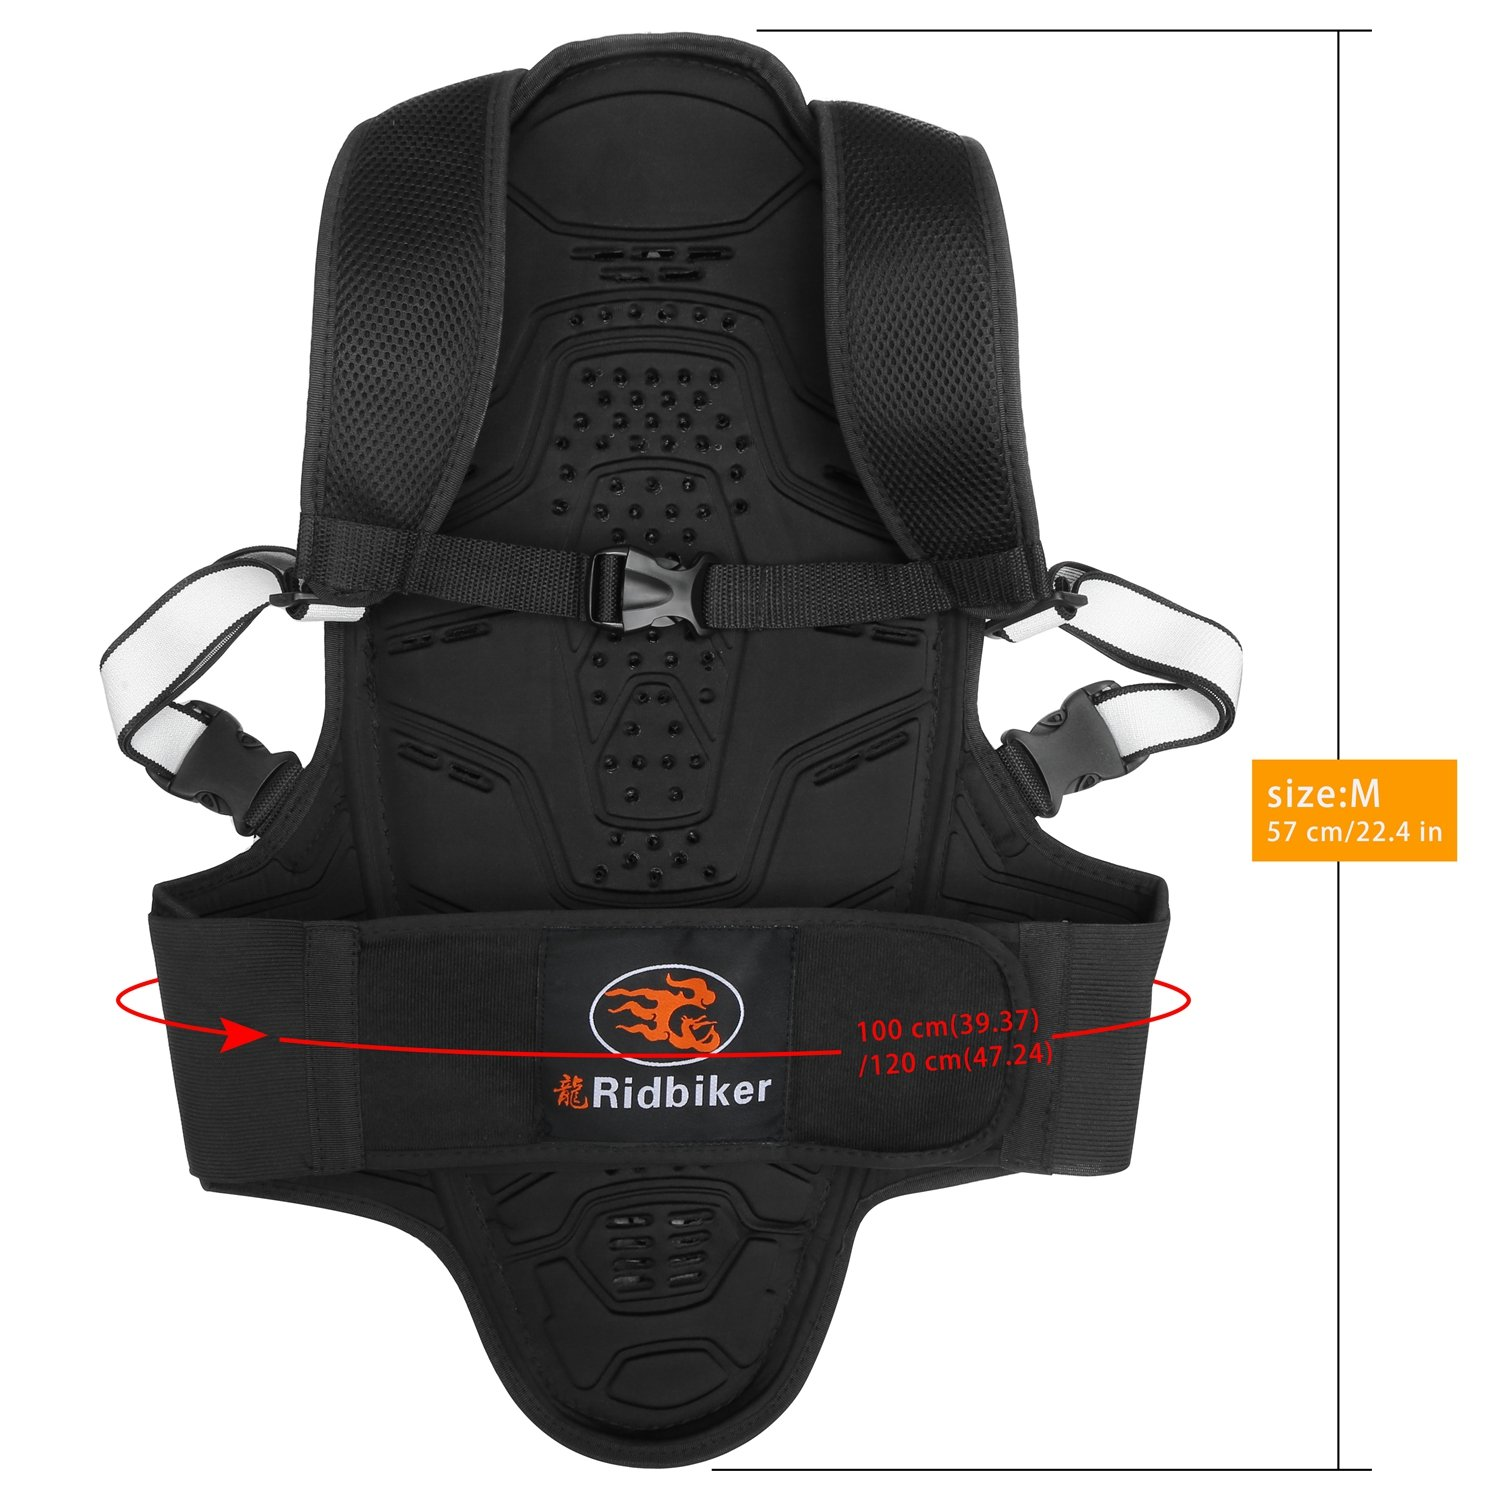 RIDBIKER Motorcycle Bicycle Back & Spine Protector Motocross Racing Spine Armor Skiing Riding Skating Anti-Fall Vest Protective Gear by RIDBIKER (Image #1)